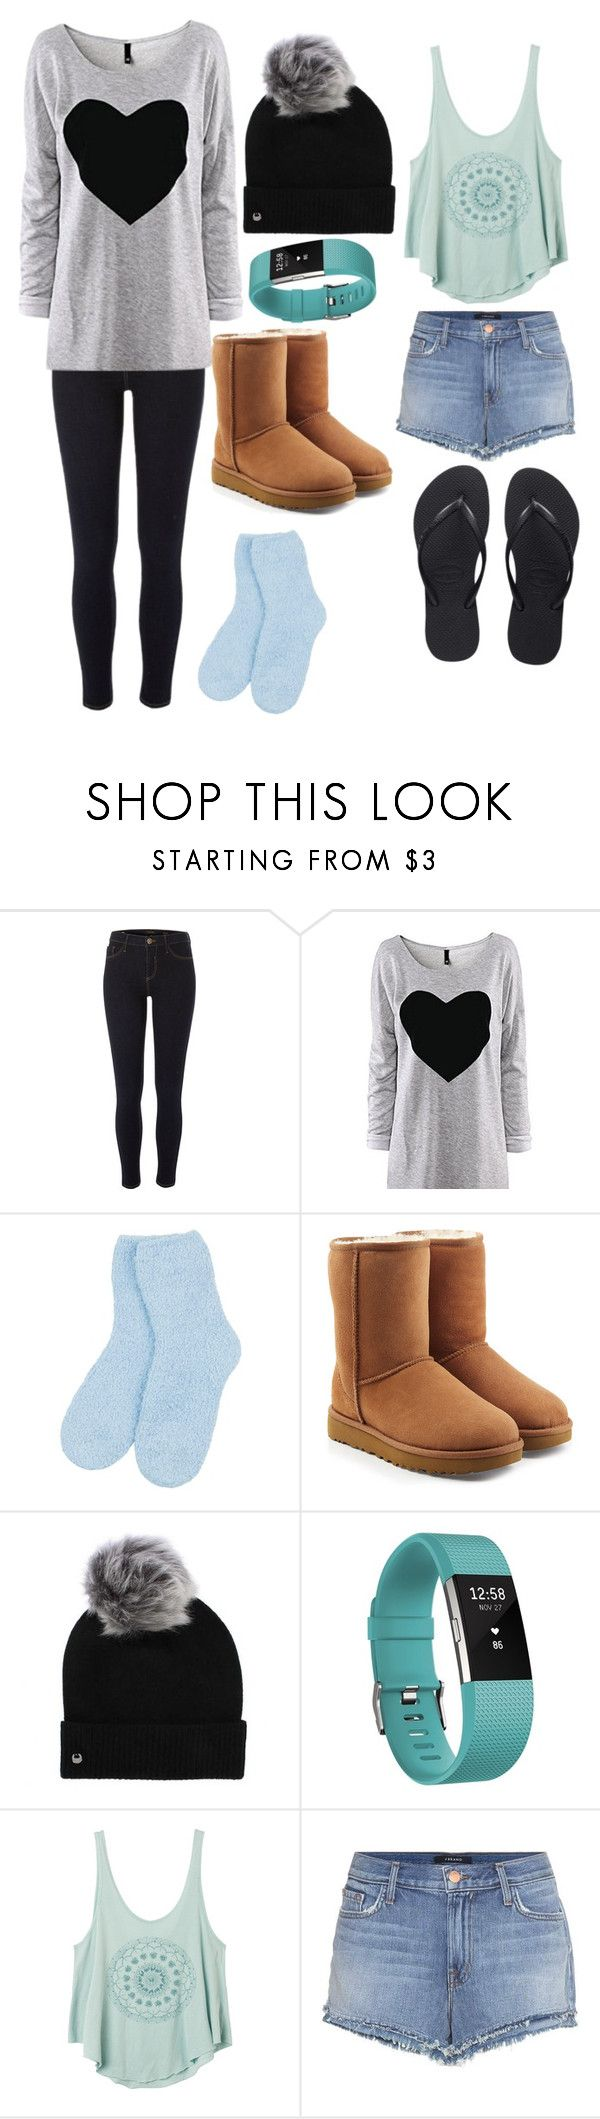 """""""My two fav looks for Summer and Winter"""" by parisgirl18 ❤ liked on Polyvore featuring River Island, UGG, Fitbit, RVCA, J Brand and Havaianas"""